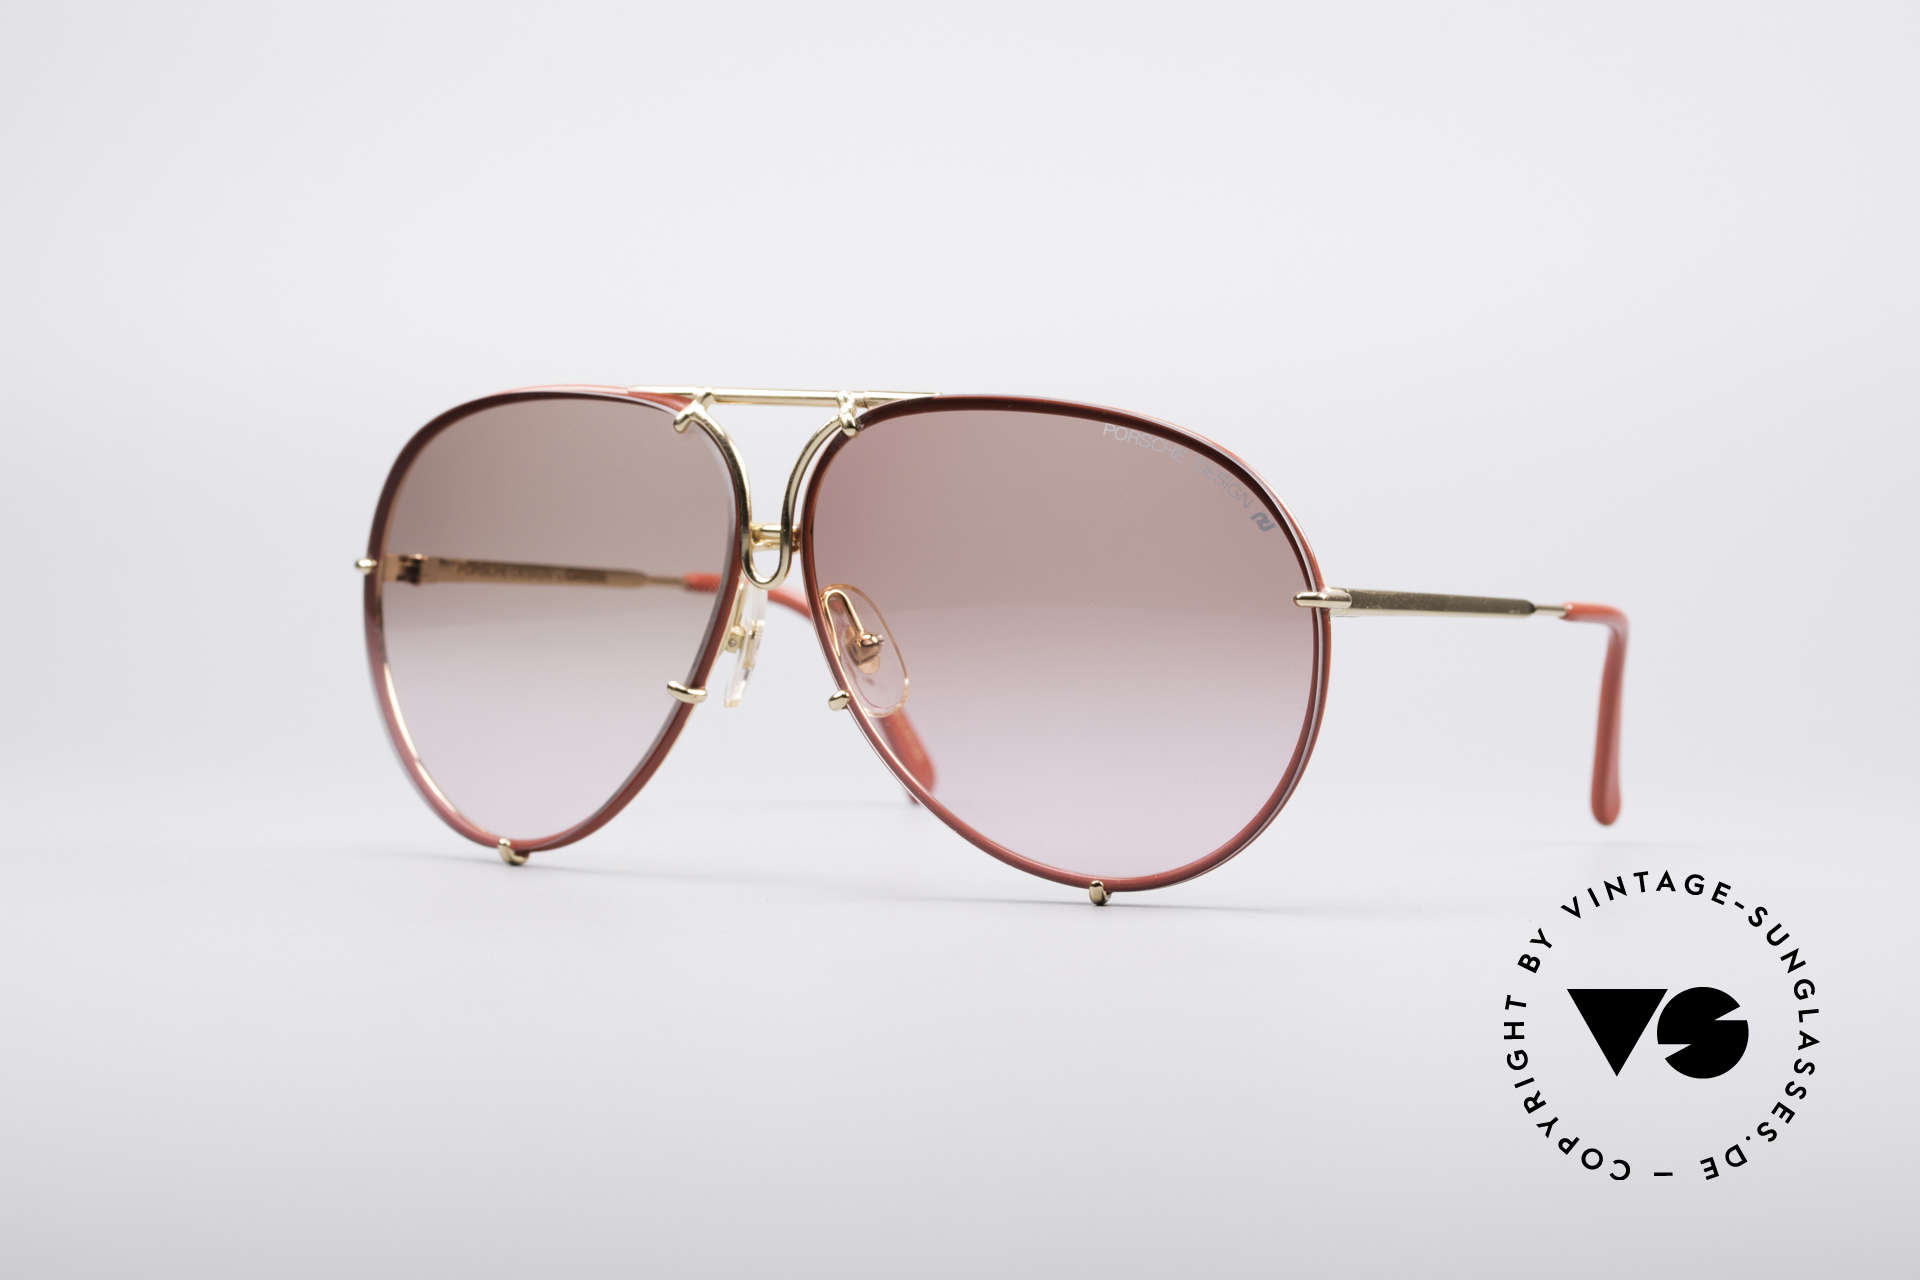 Porsche 5623 Limited Special Edition, vintage Porsche Design by Carrera shades from 1987, Made for Women